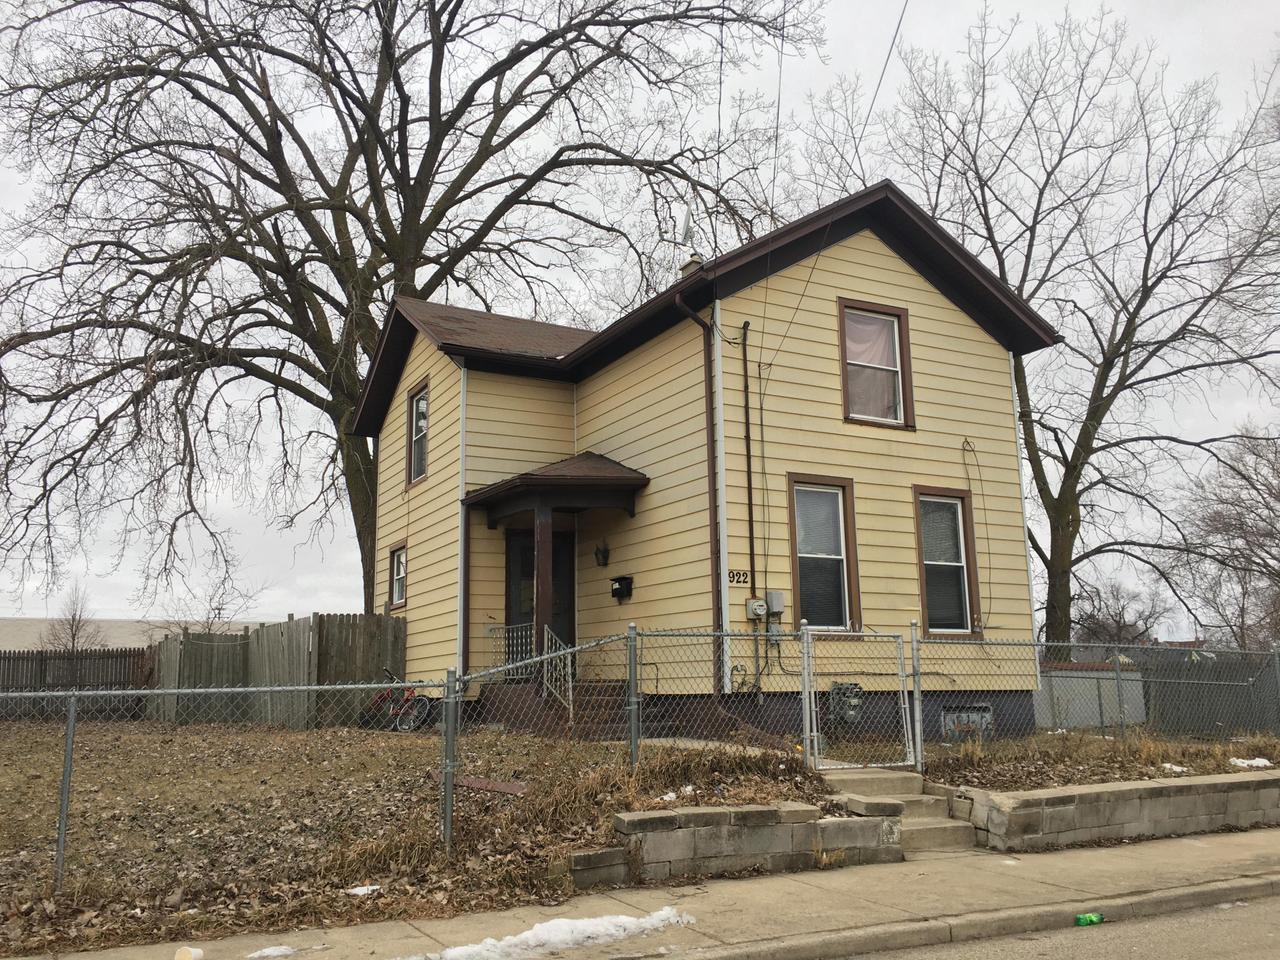 ARE YOU PAYING TOO MUCH FOR RENT?! OR, ARE YOU READY TO ADD ANOTHER HOME TO YOUR RENTAL PORTFOLIO?! THIS 3 BEDROOM HOME IS CURRENTLY  OCCUPIED WITH A TENANT AND RENTED FOR $950.00 MO. LEASE IS MONTH TO MONTH HOME IS SITUATED ON A LARGE LOT WITH LOTS OF POTENTIAL.